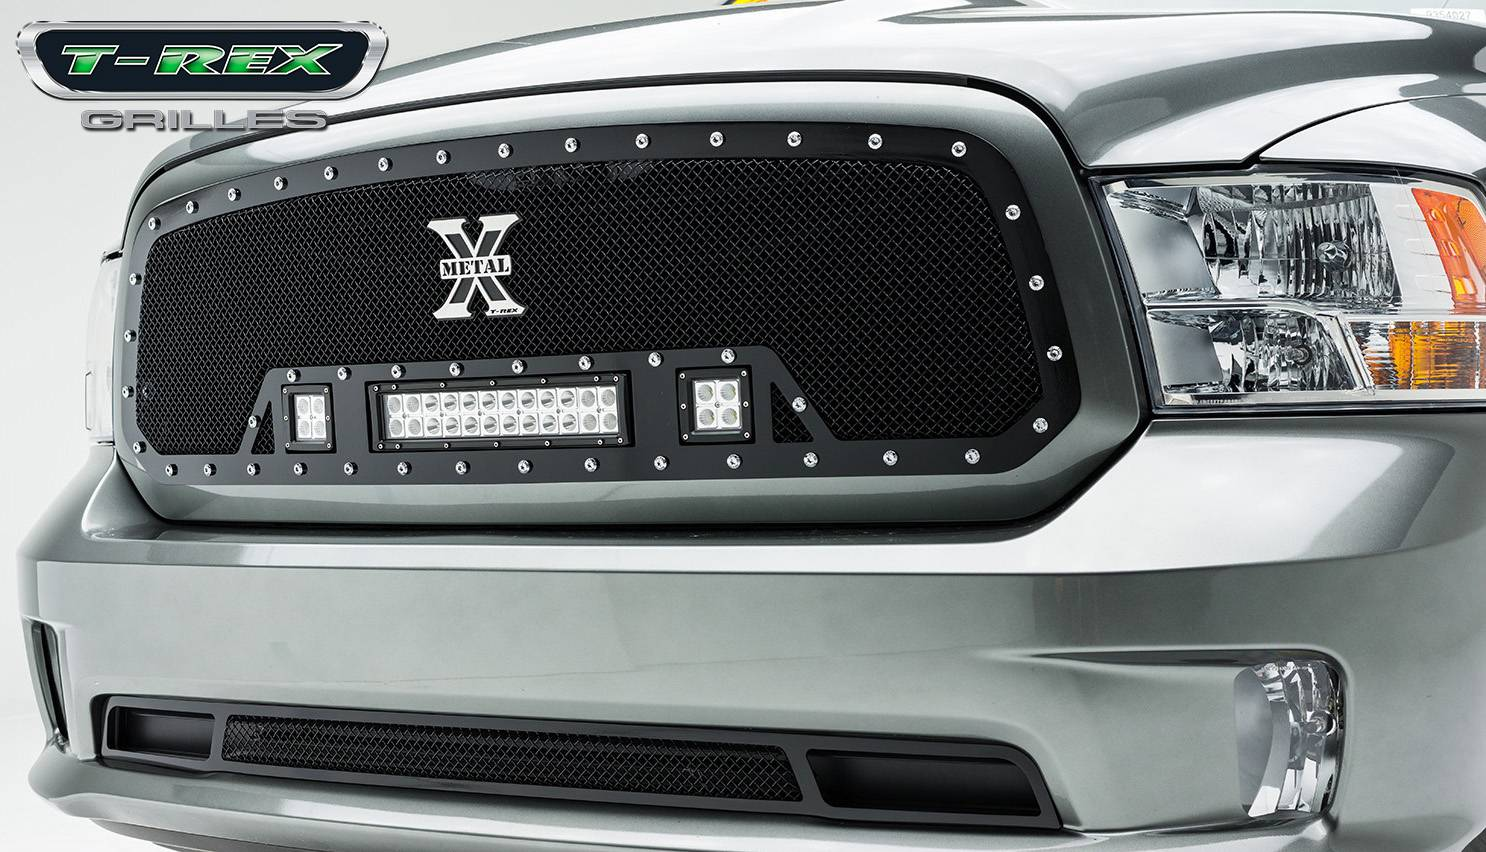 "T-REX Dodge Ram 1500 TORCH Series LED Light Grille Single 2 - 3"" LED Cubes 1 - 12"" Light Bar For off-road use only - Pt # 6314581"